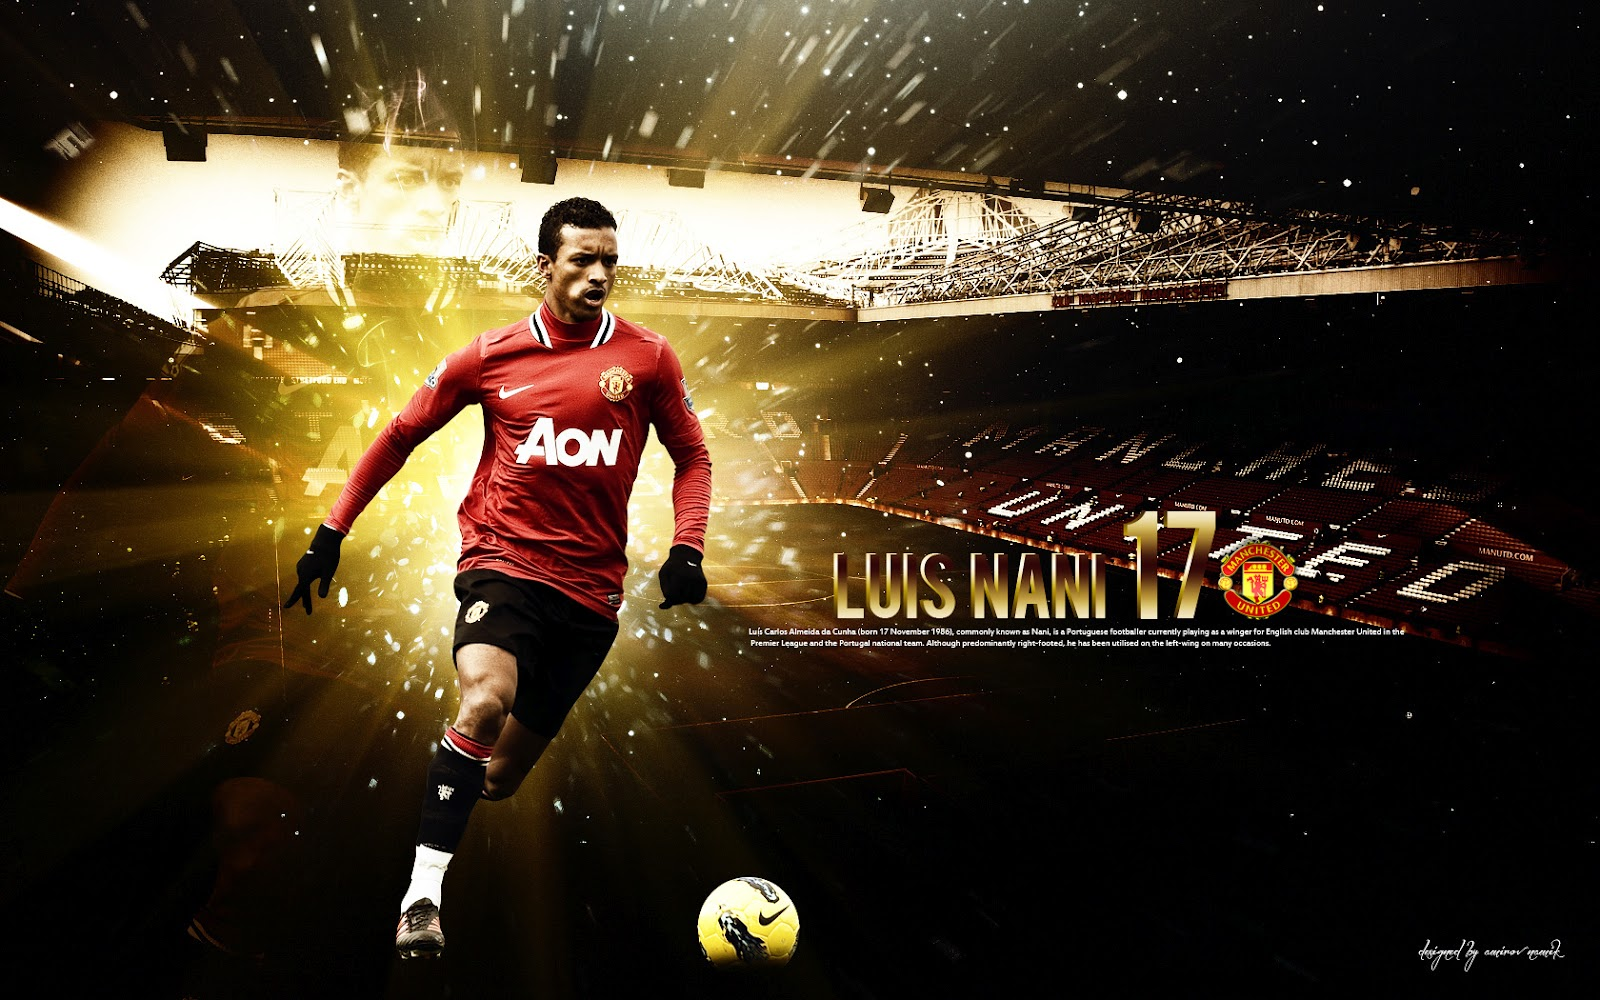 Arsenal Fc 3d Wallpapers All Wallpapers Nani New Hd Wallpapers 2012